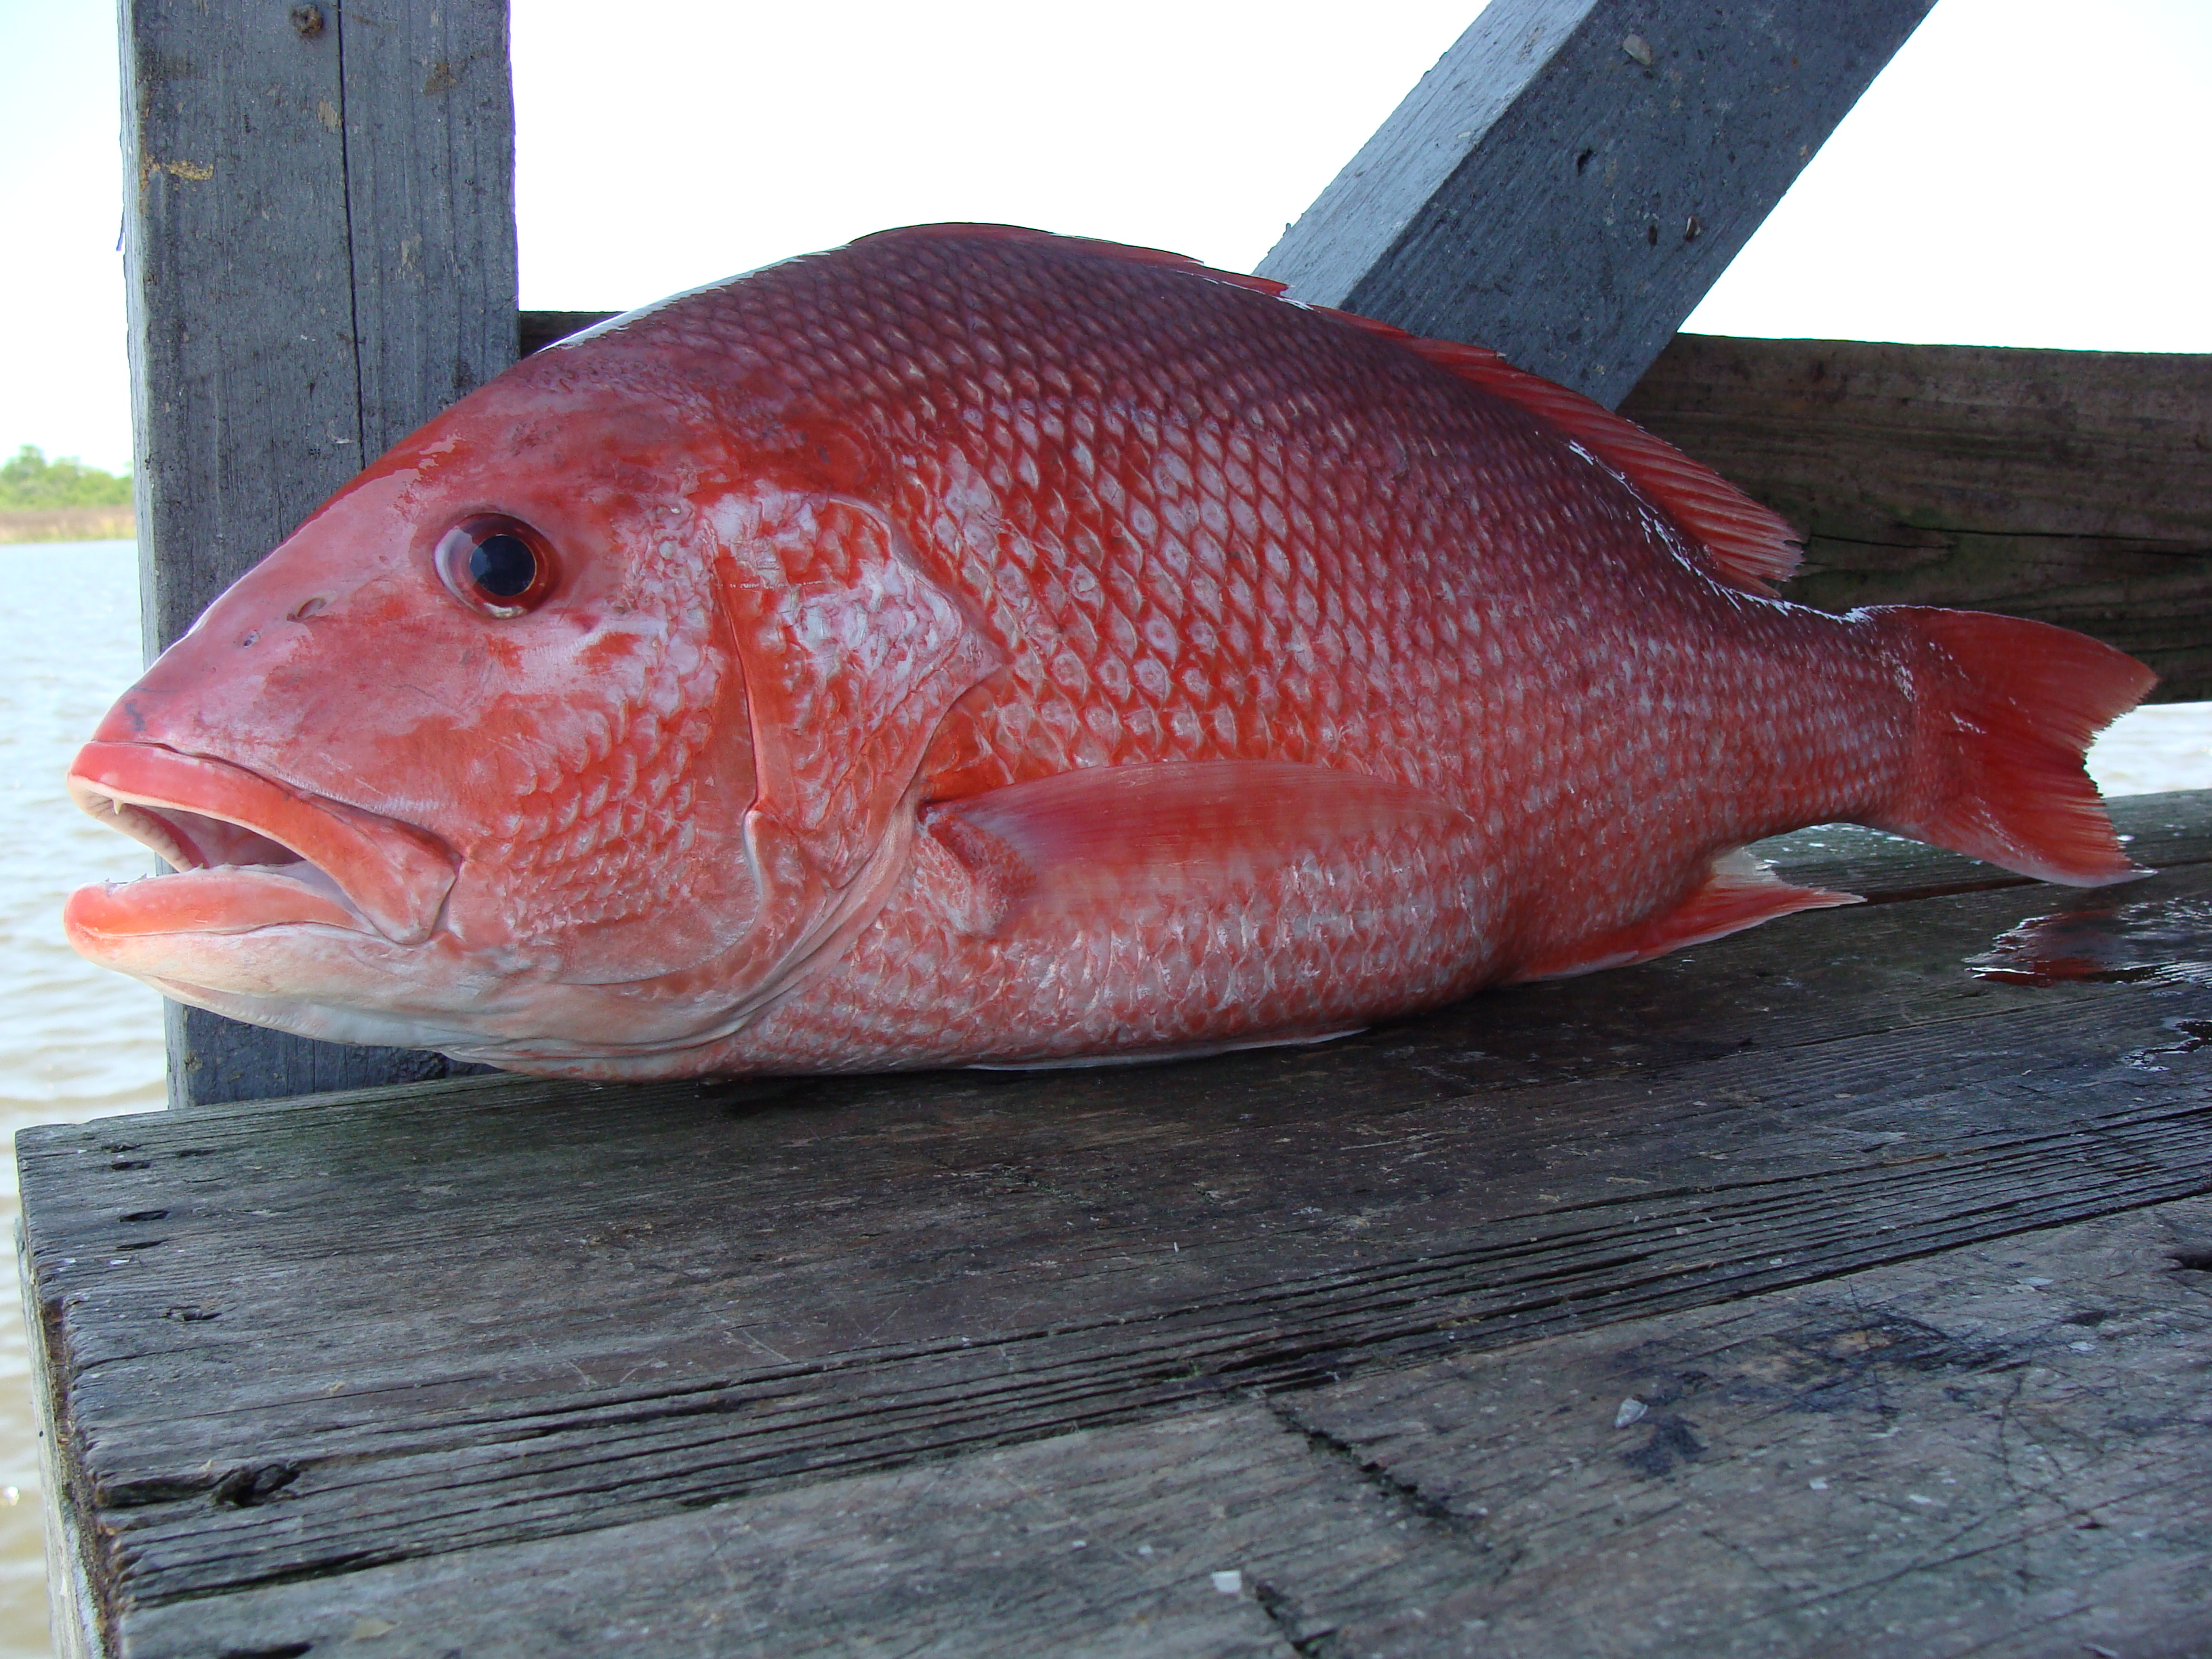 2018 florida red snapper season guidelines tripshock for Red snapper fishing